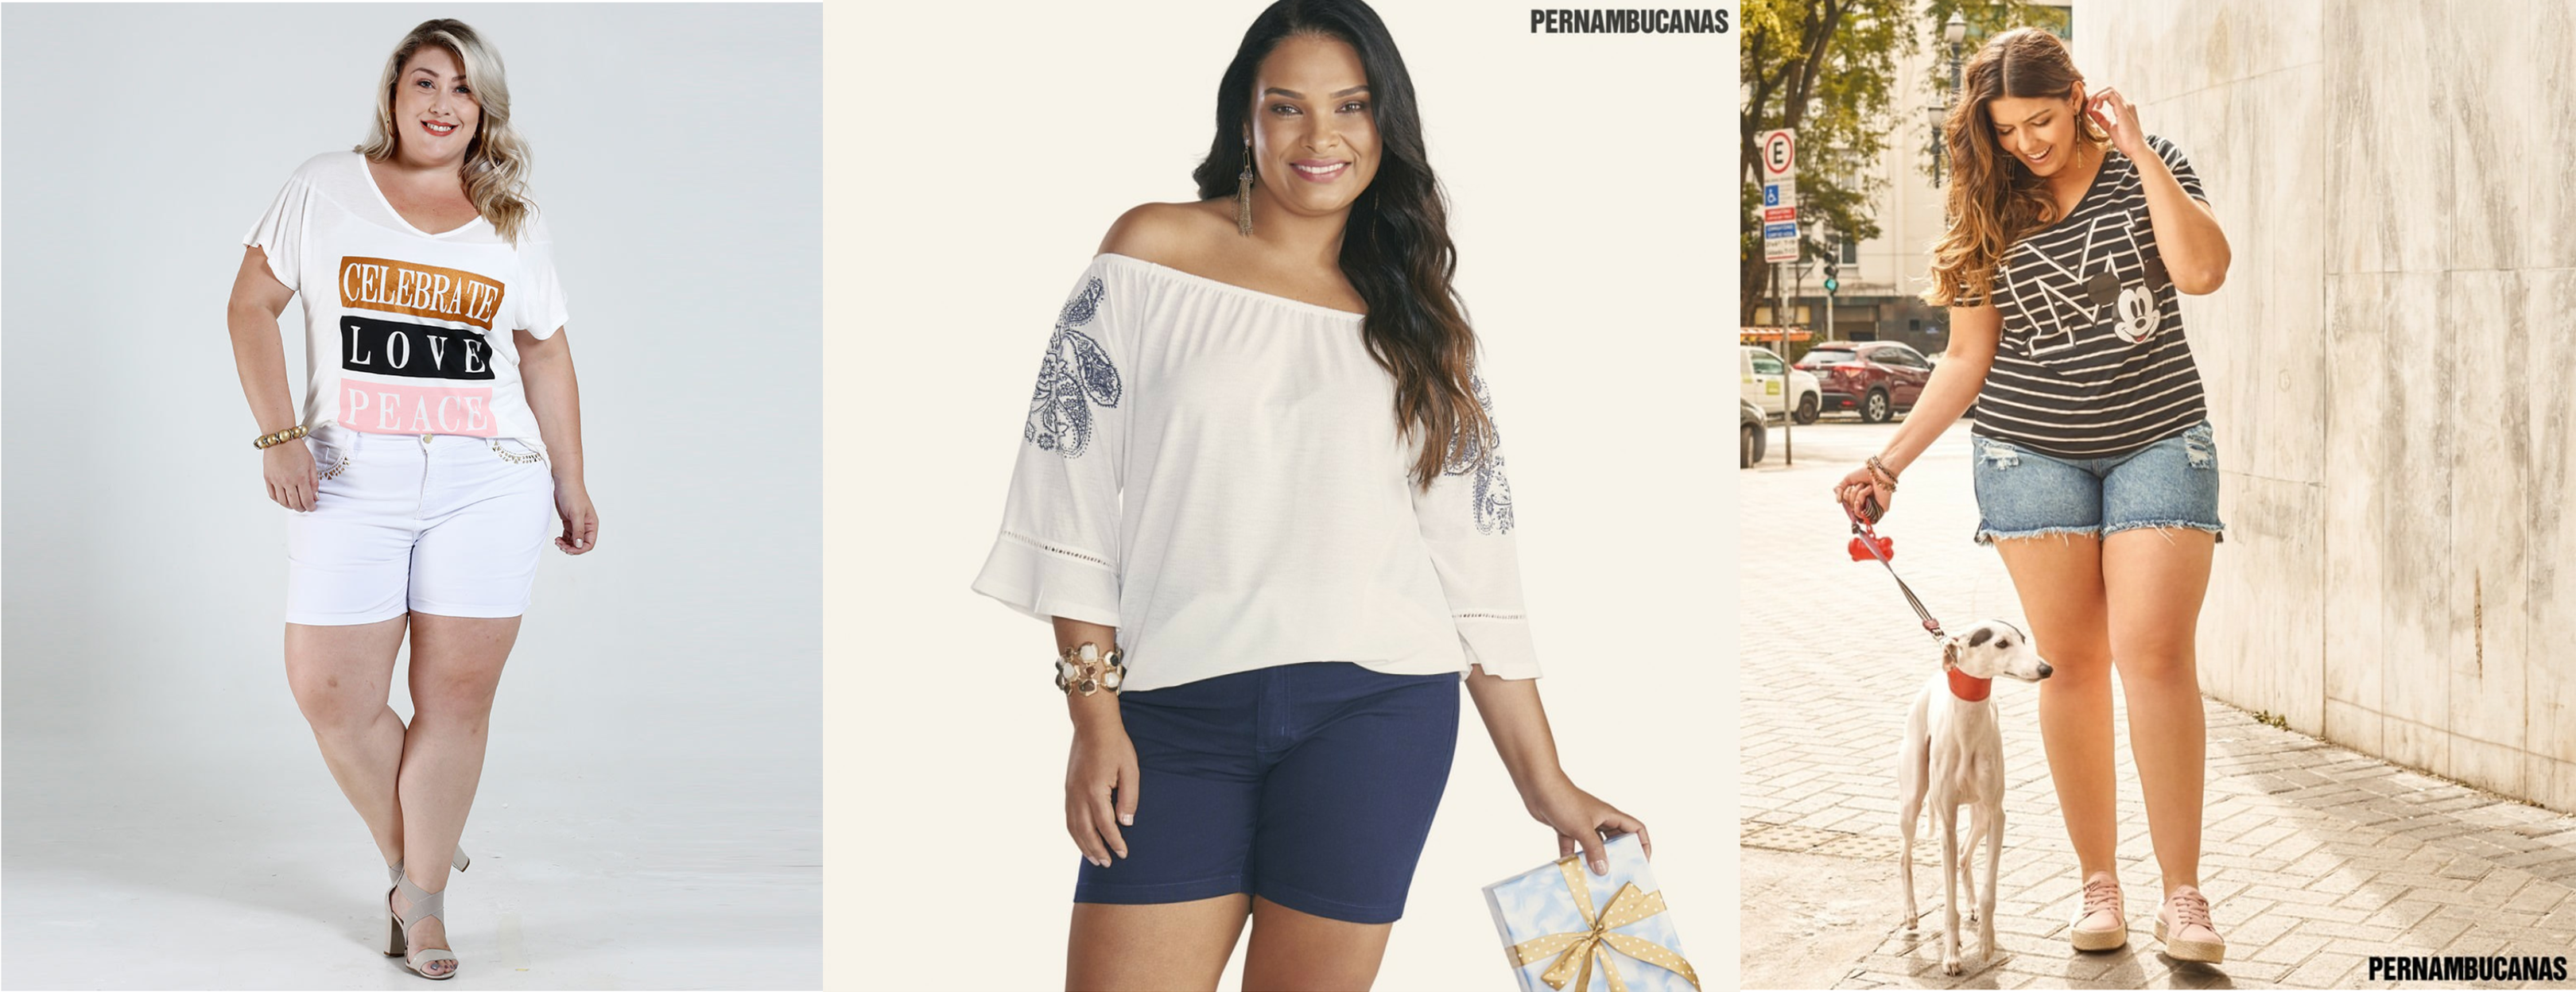 Dica: Comprando looks plus size de final de ano no shopping 3